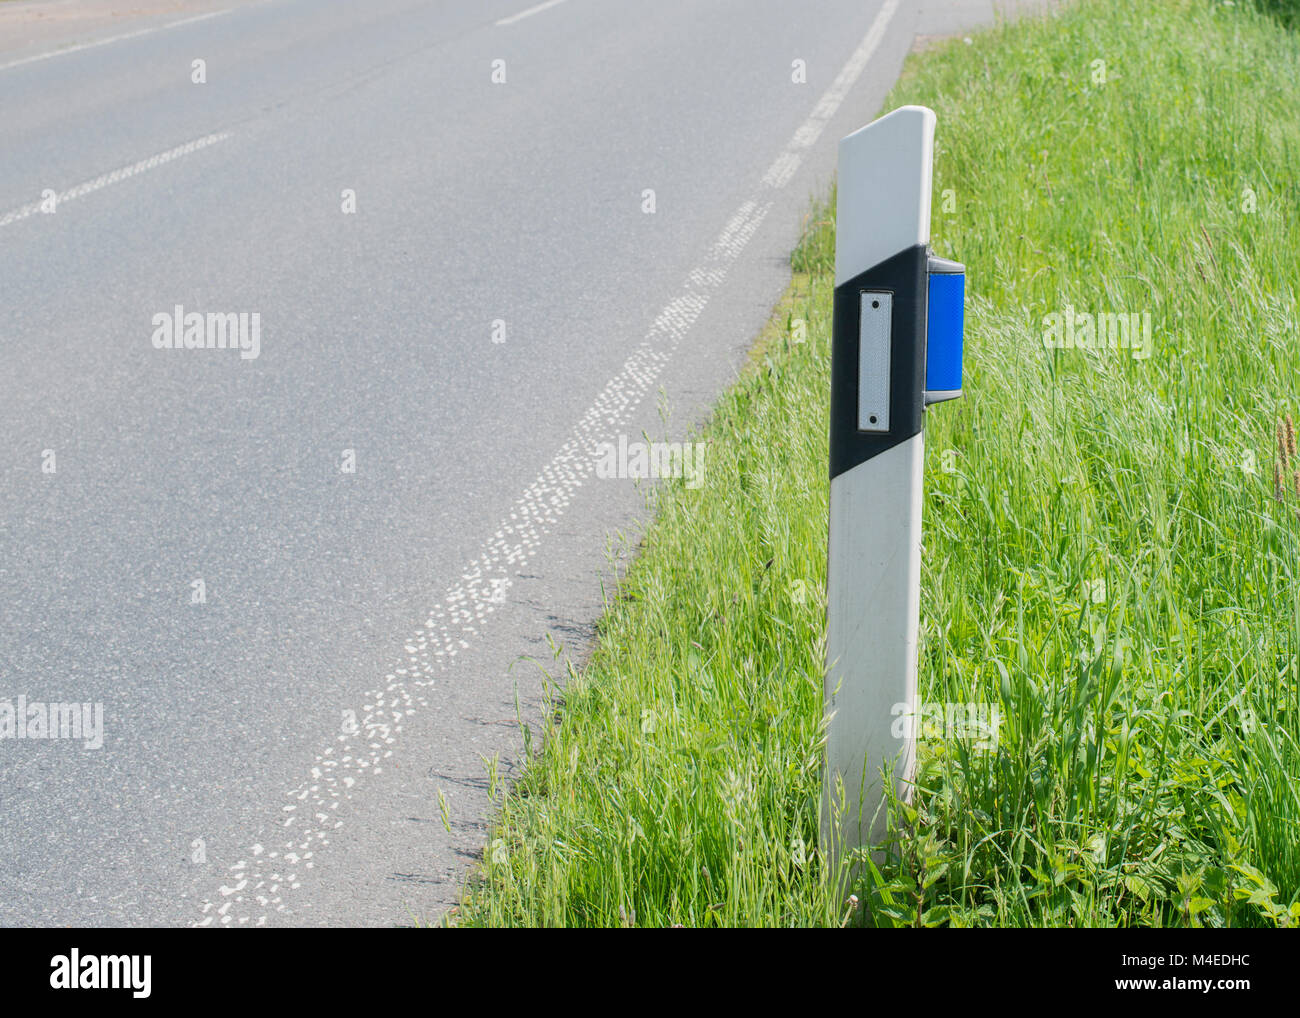 Guiding post with blue wild reflector on the road - Stock Image